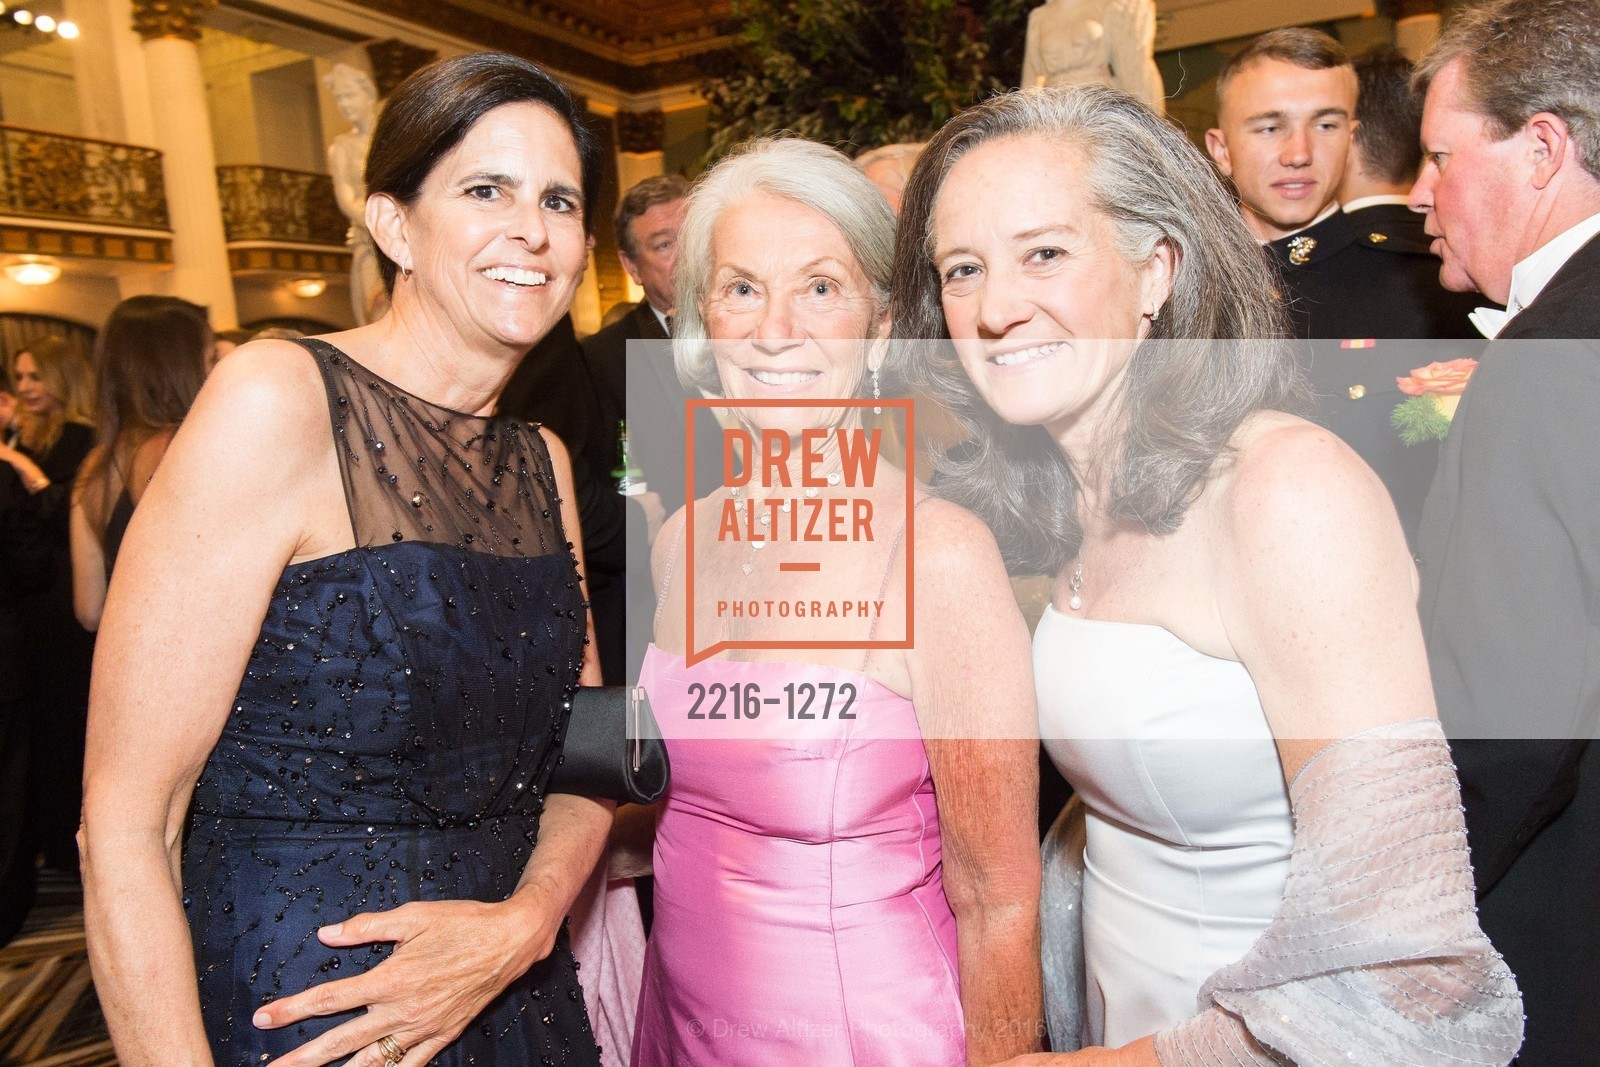 Traci Gale, Sandy Froley, Dana Thomas, Photo #2216-1272